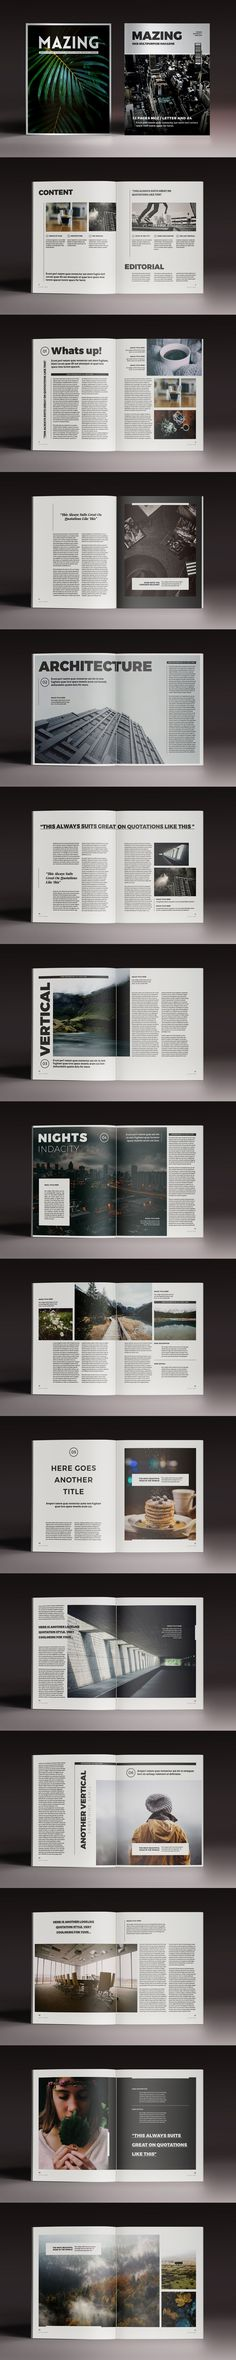 32 Pages Magazine Template InDesign INDD - Letter Size and A4 Size